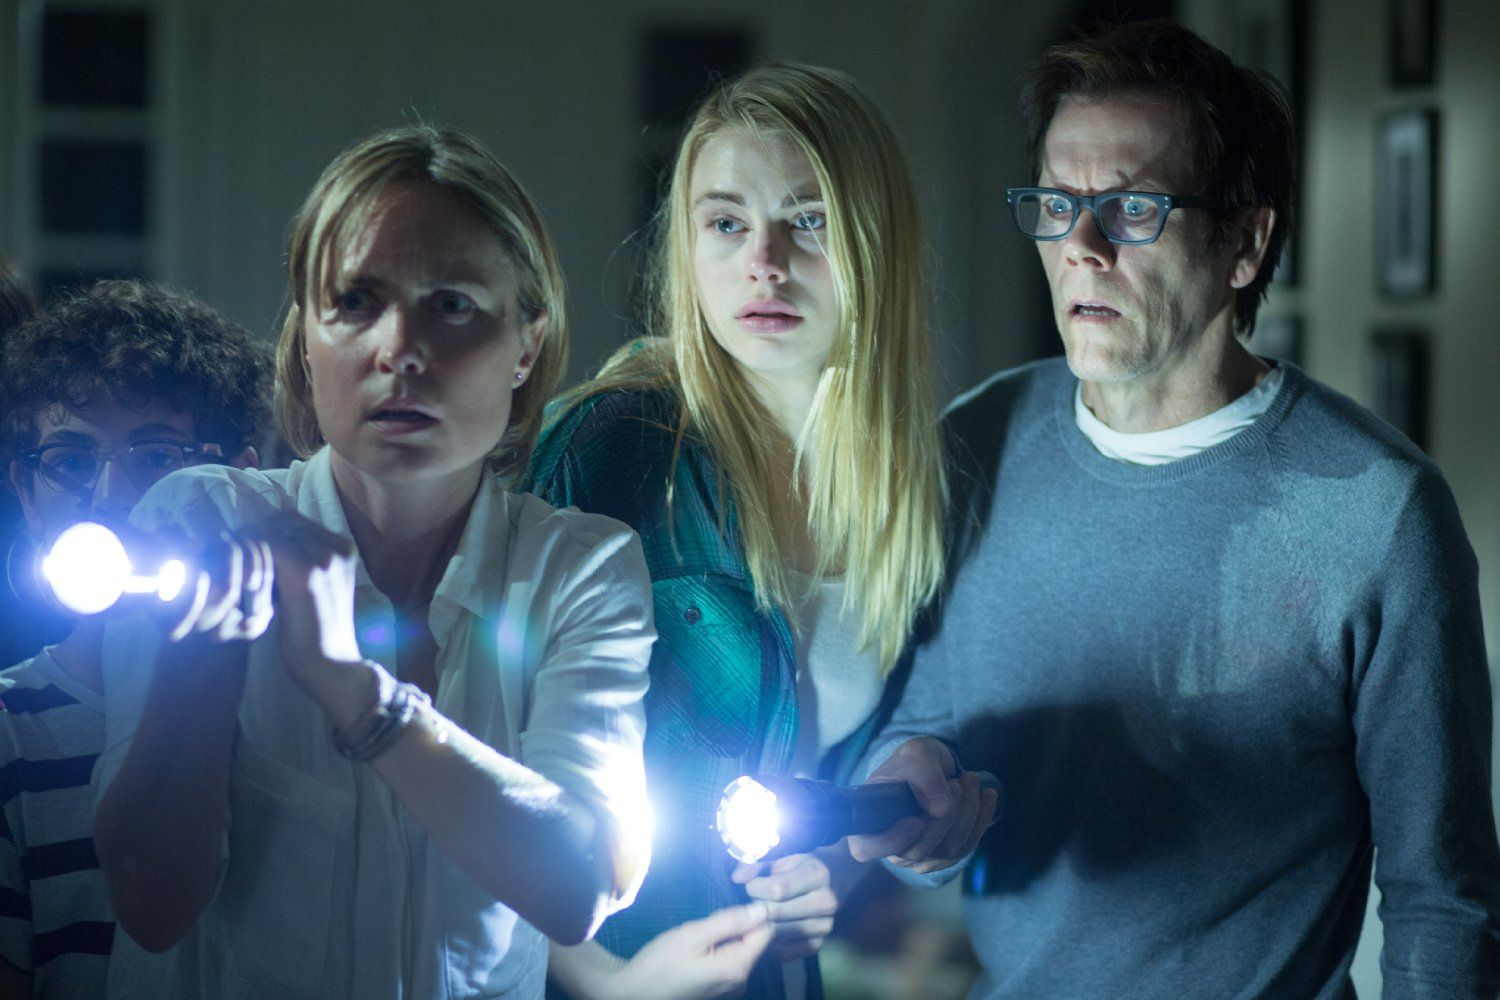 Kevin Bacon, Radha Mitchell, David Mazouz, and Lucy Fry in